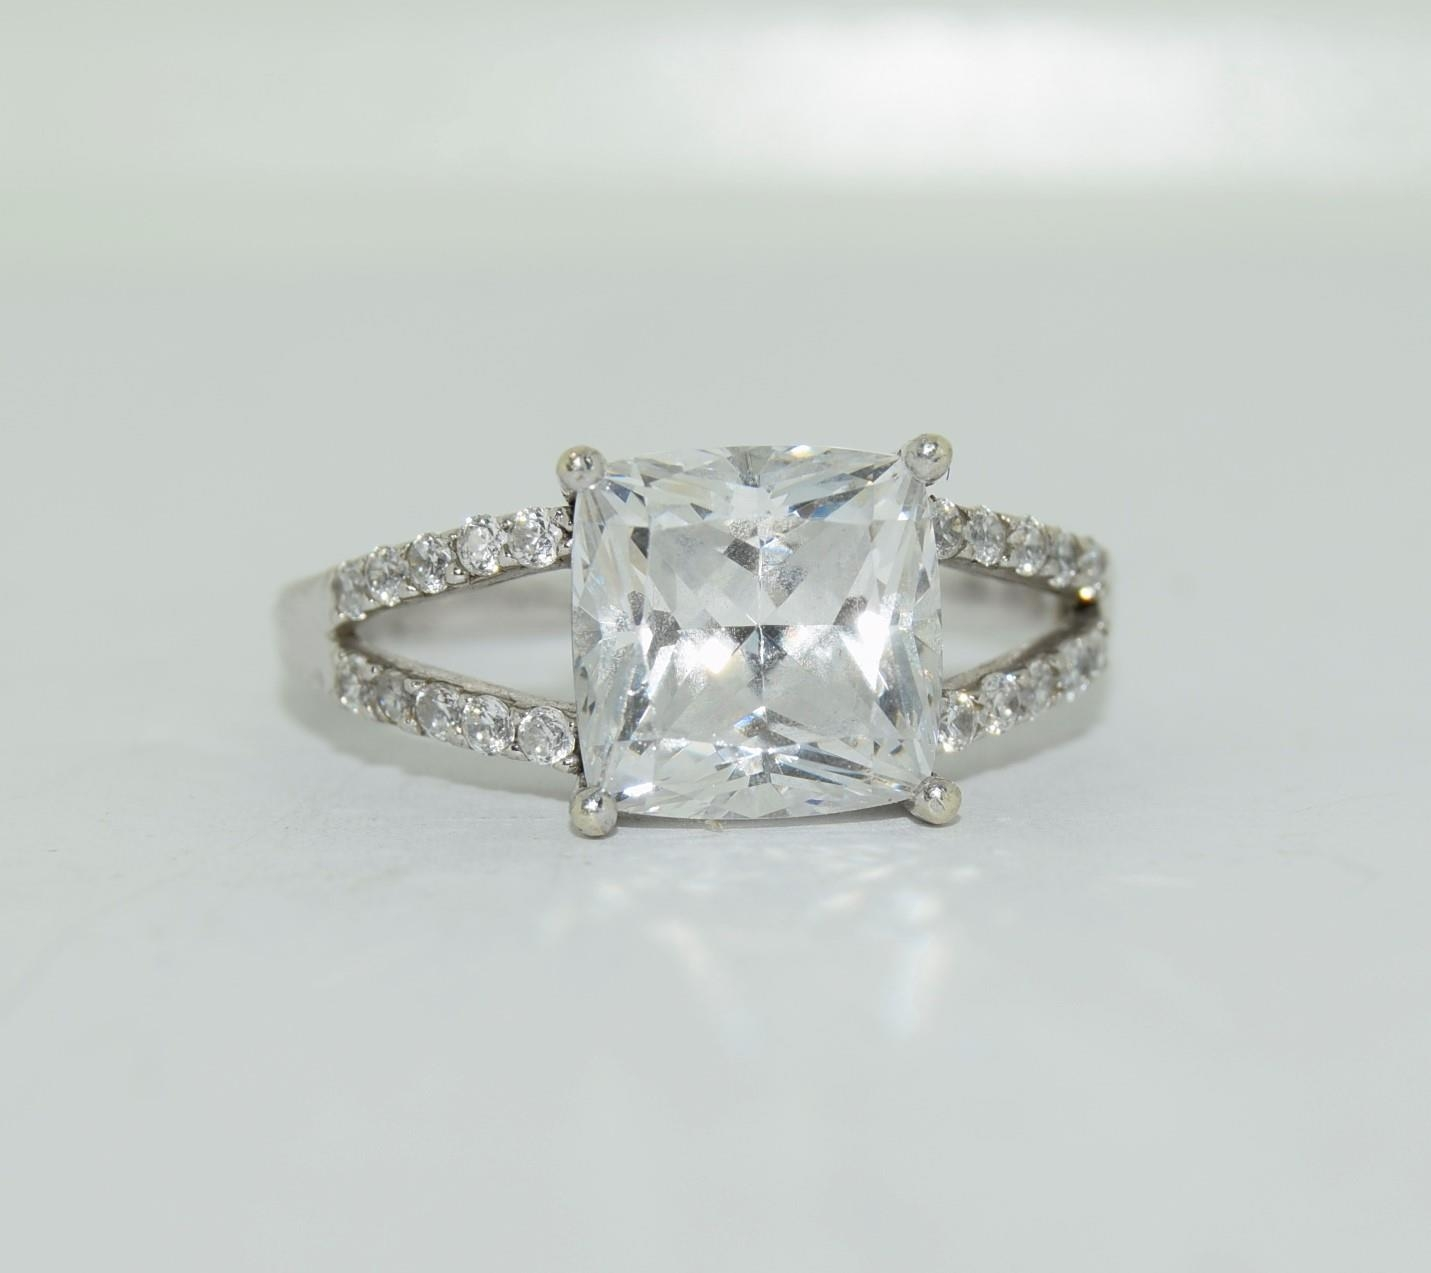 9ct white gold ladies square set solitare ring size R - Image 11 of 12